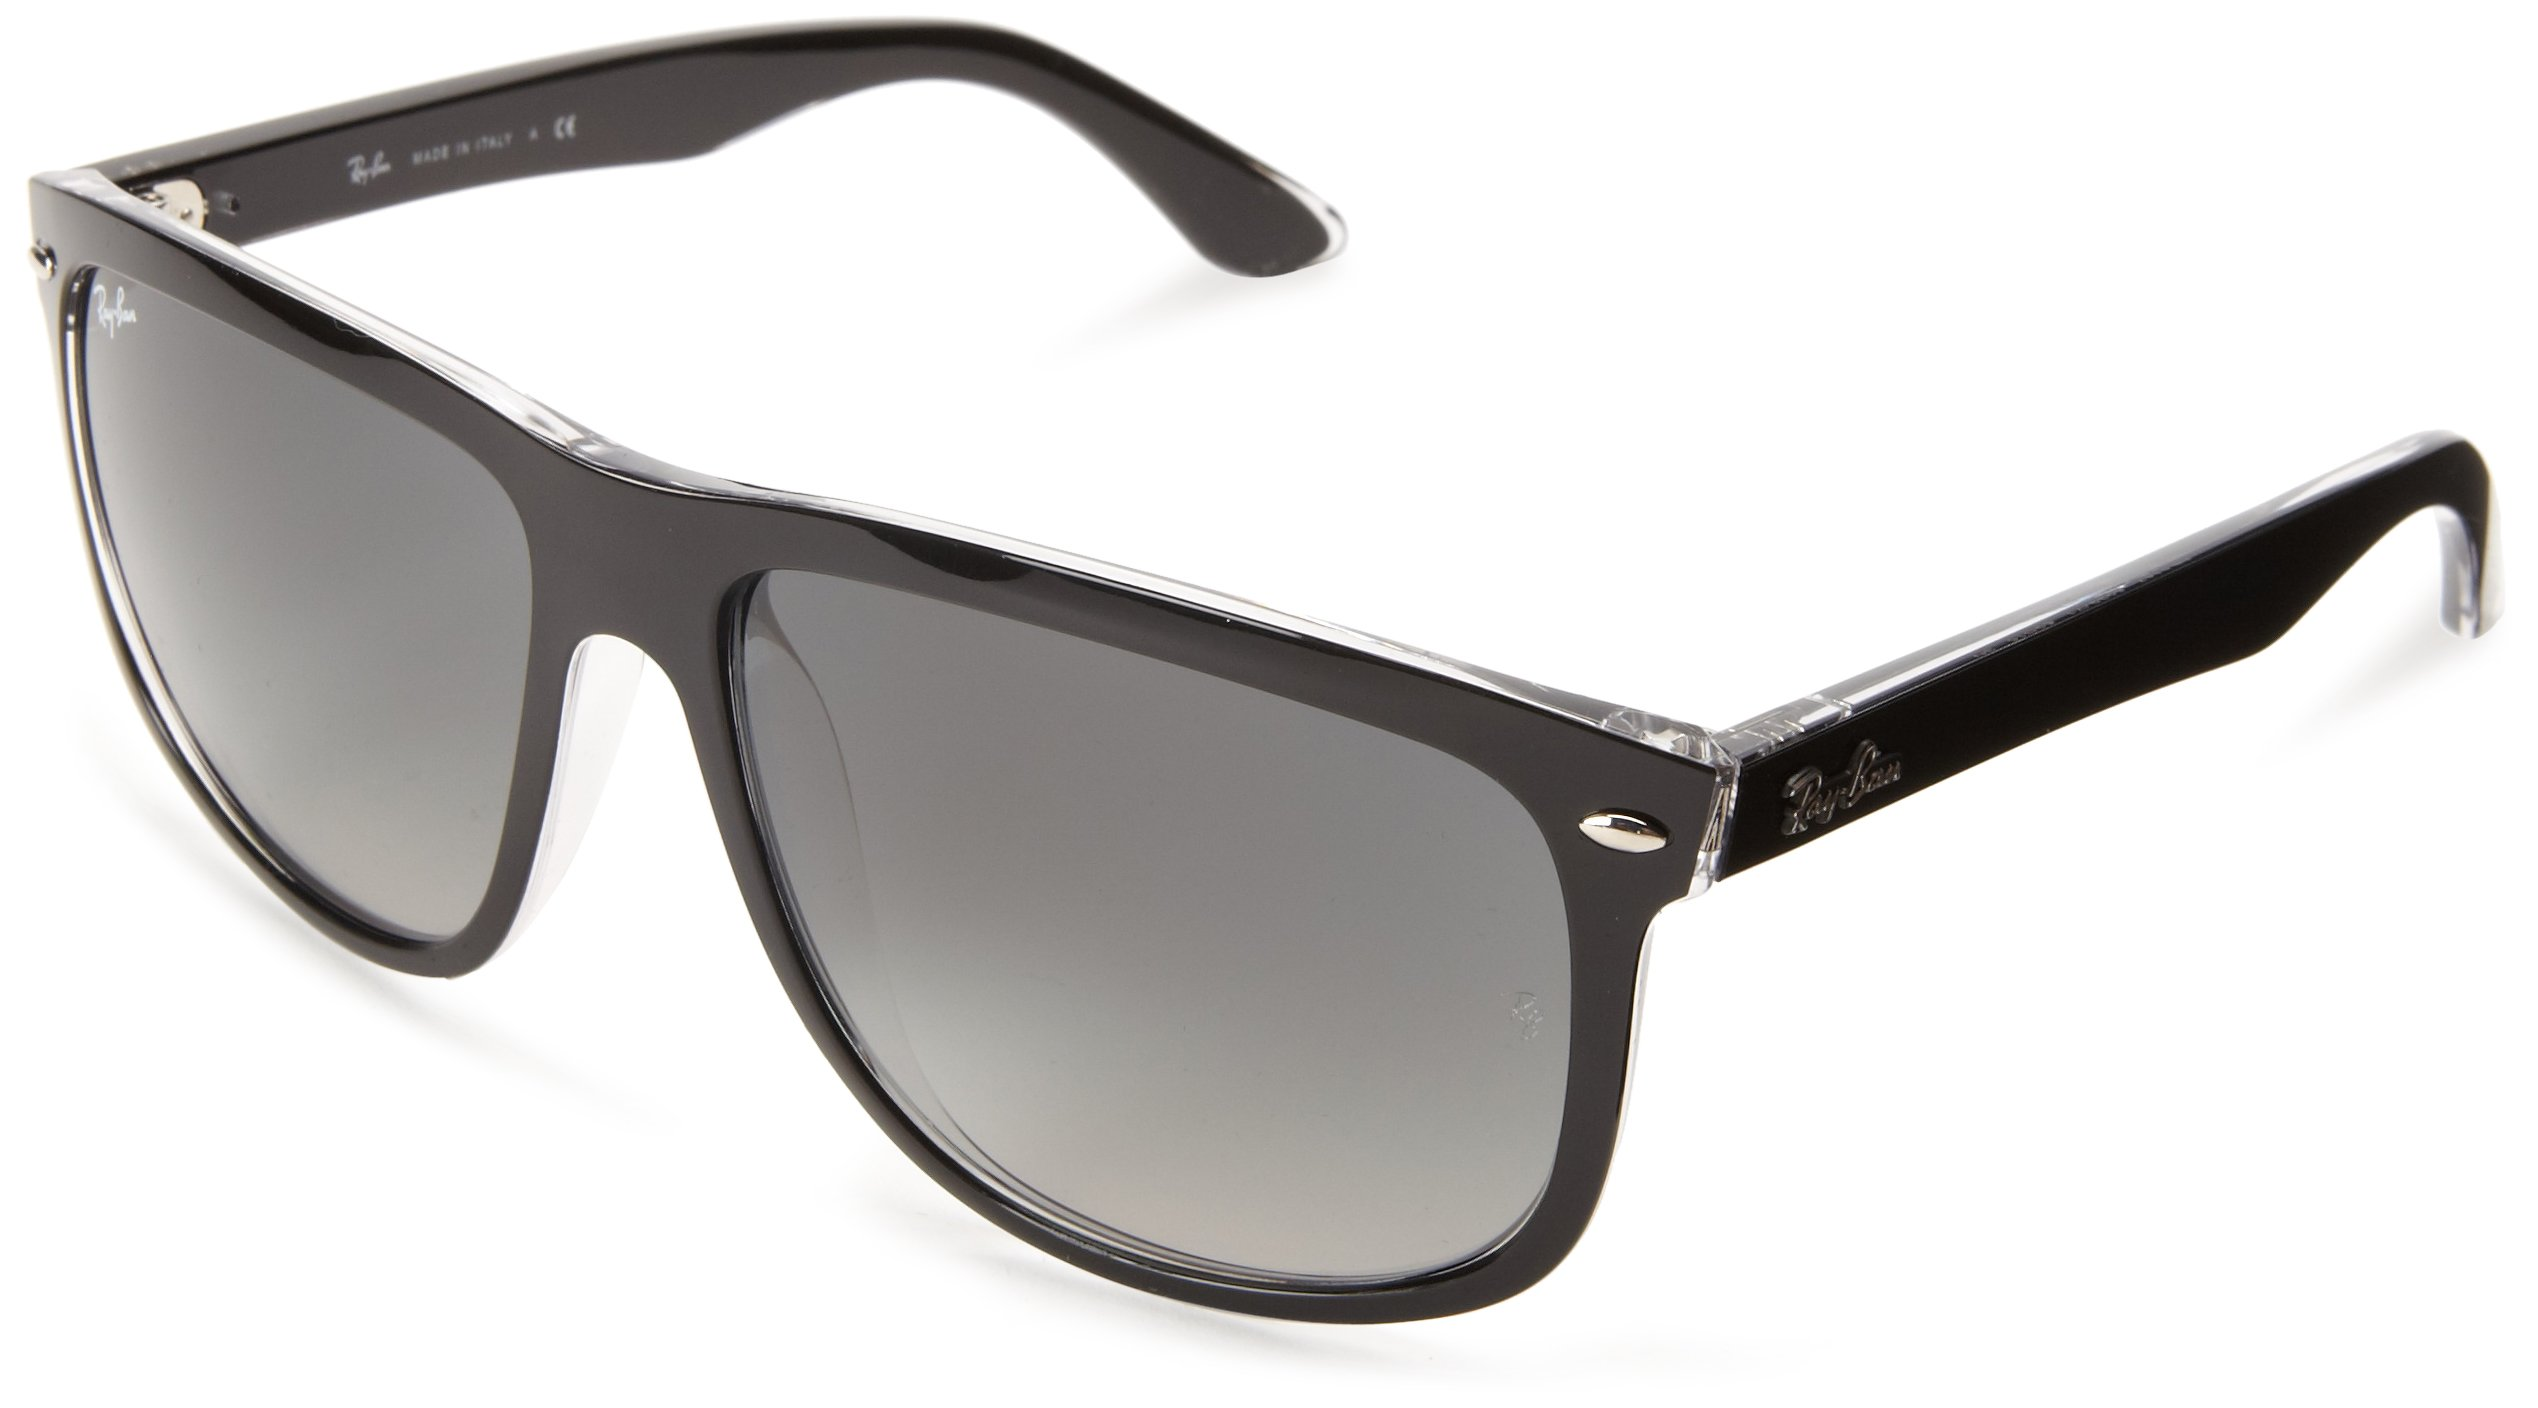 RAY-BAN RB4147 Boyfriend Square Sunglasses, Top Black On Transparent/Grey Gradient Azure, 60 mm by RAY-BAN